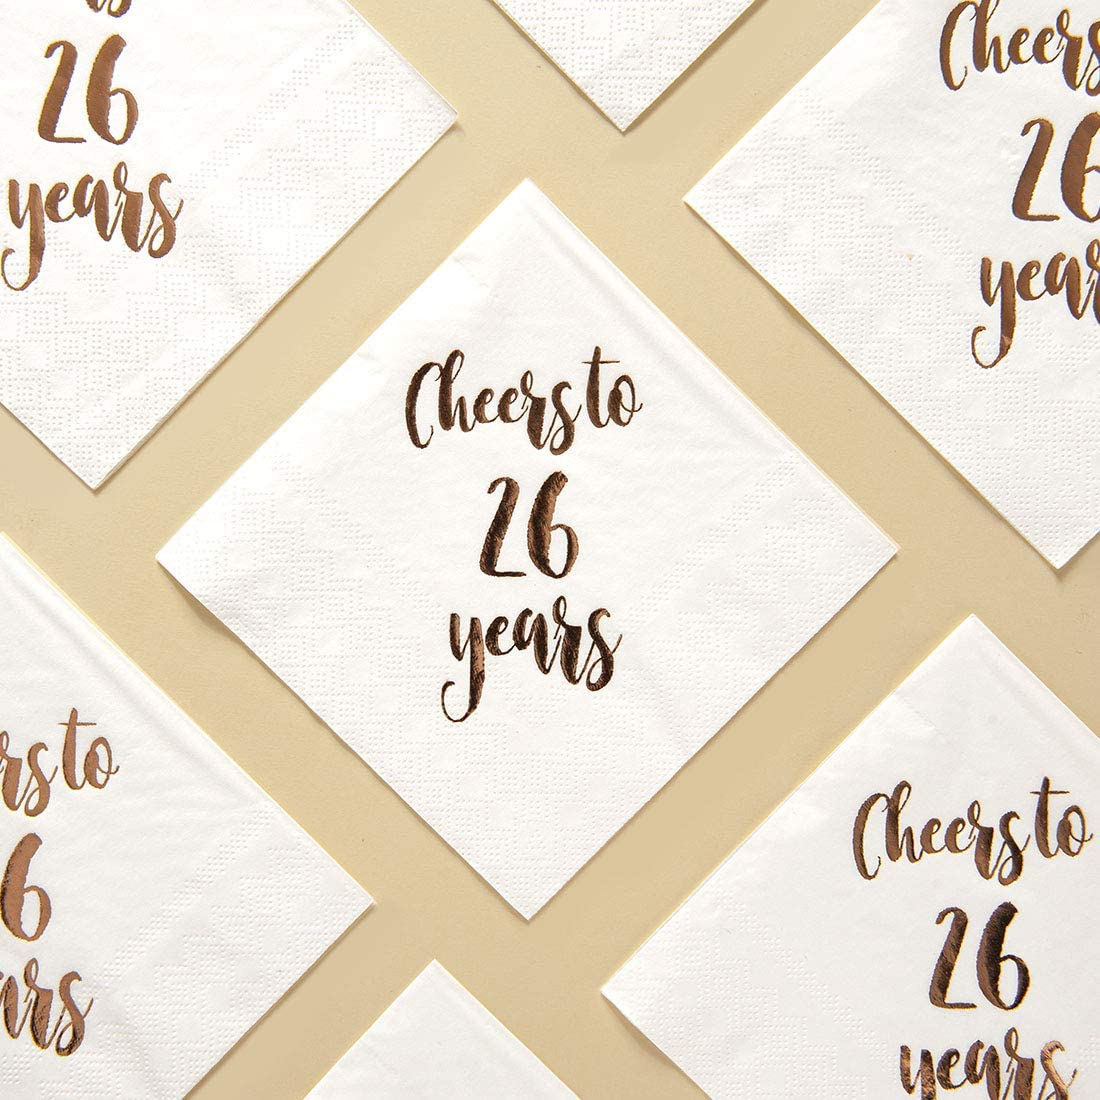 Cheers to 26 years cocktail napkins 50-pack 3ply white rose gold 26th birthday dinner celebration party decoration napkin